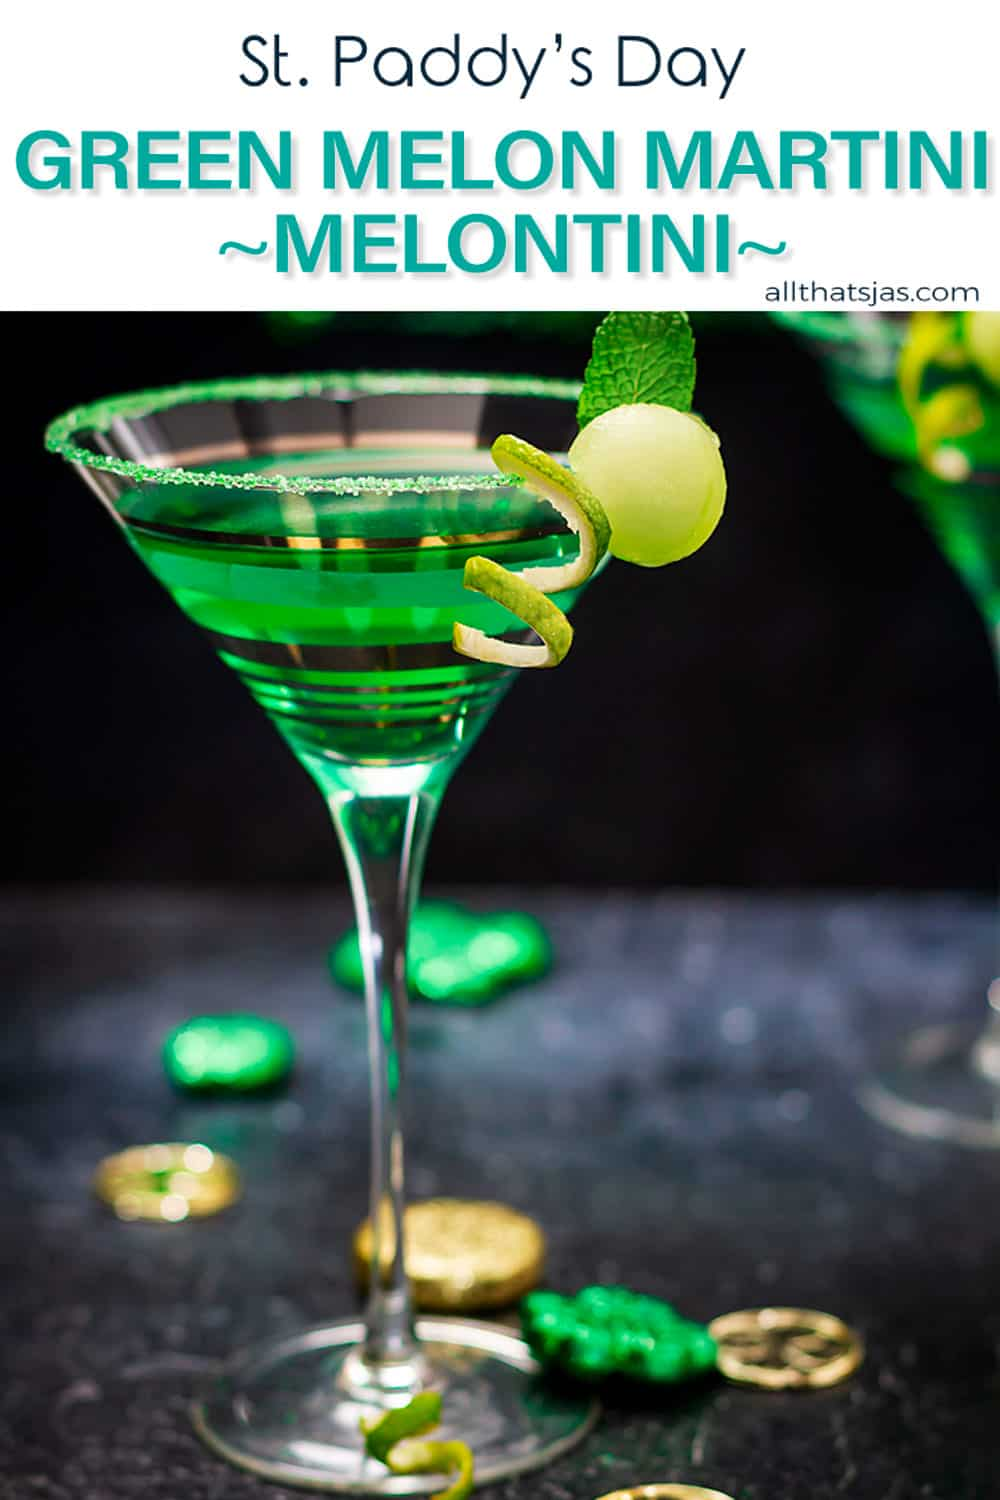 A melon martini in a glass on the black table with text overlay.